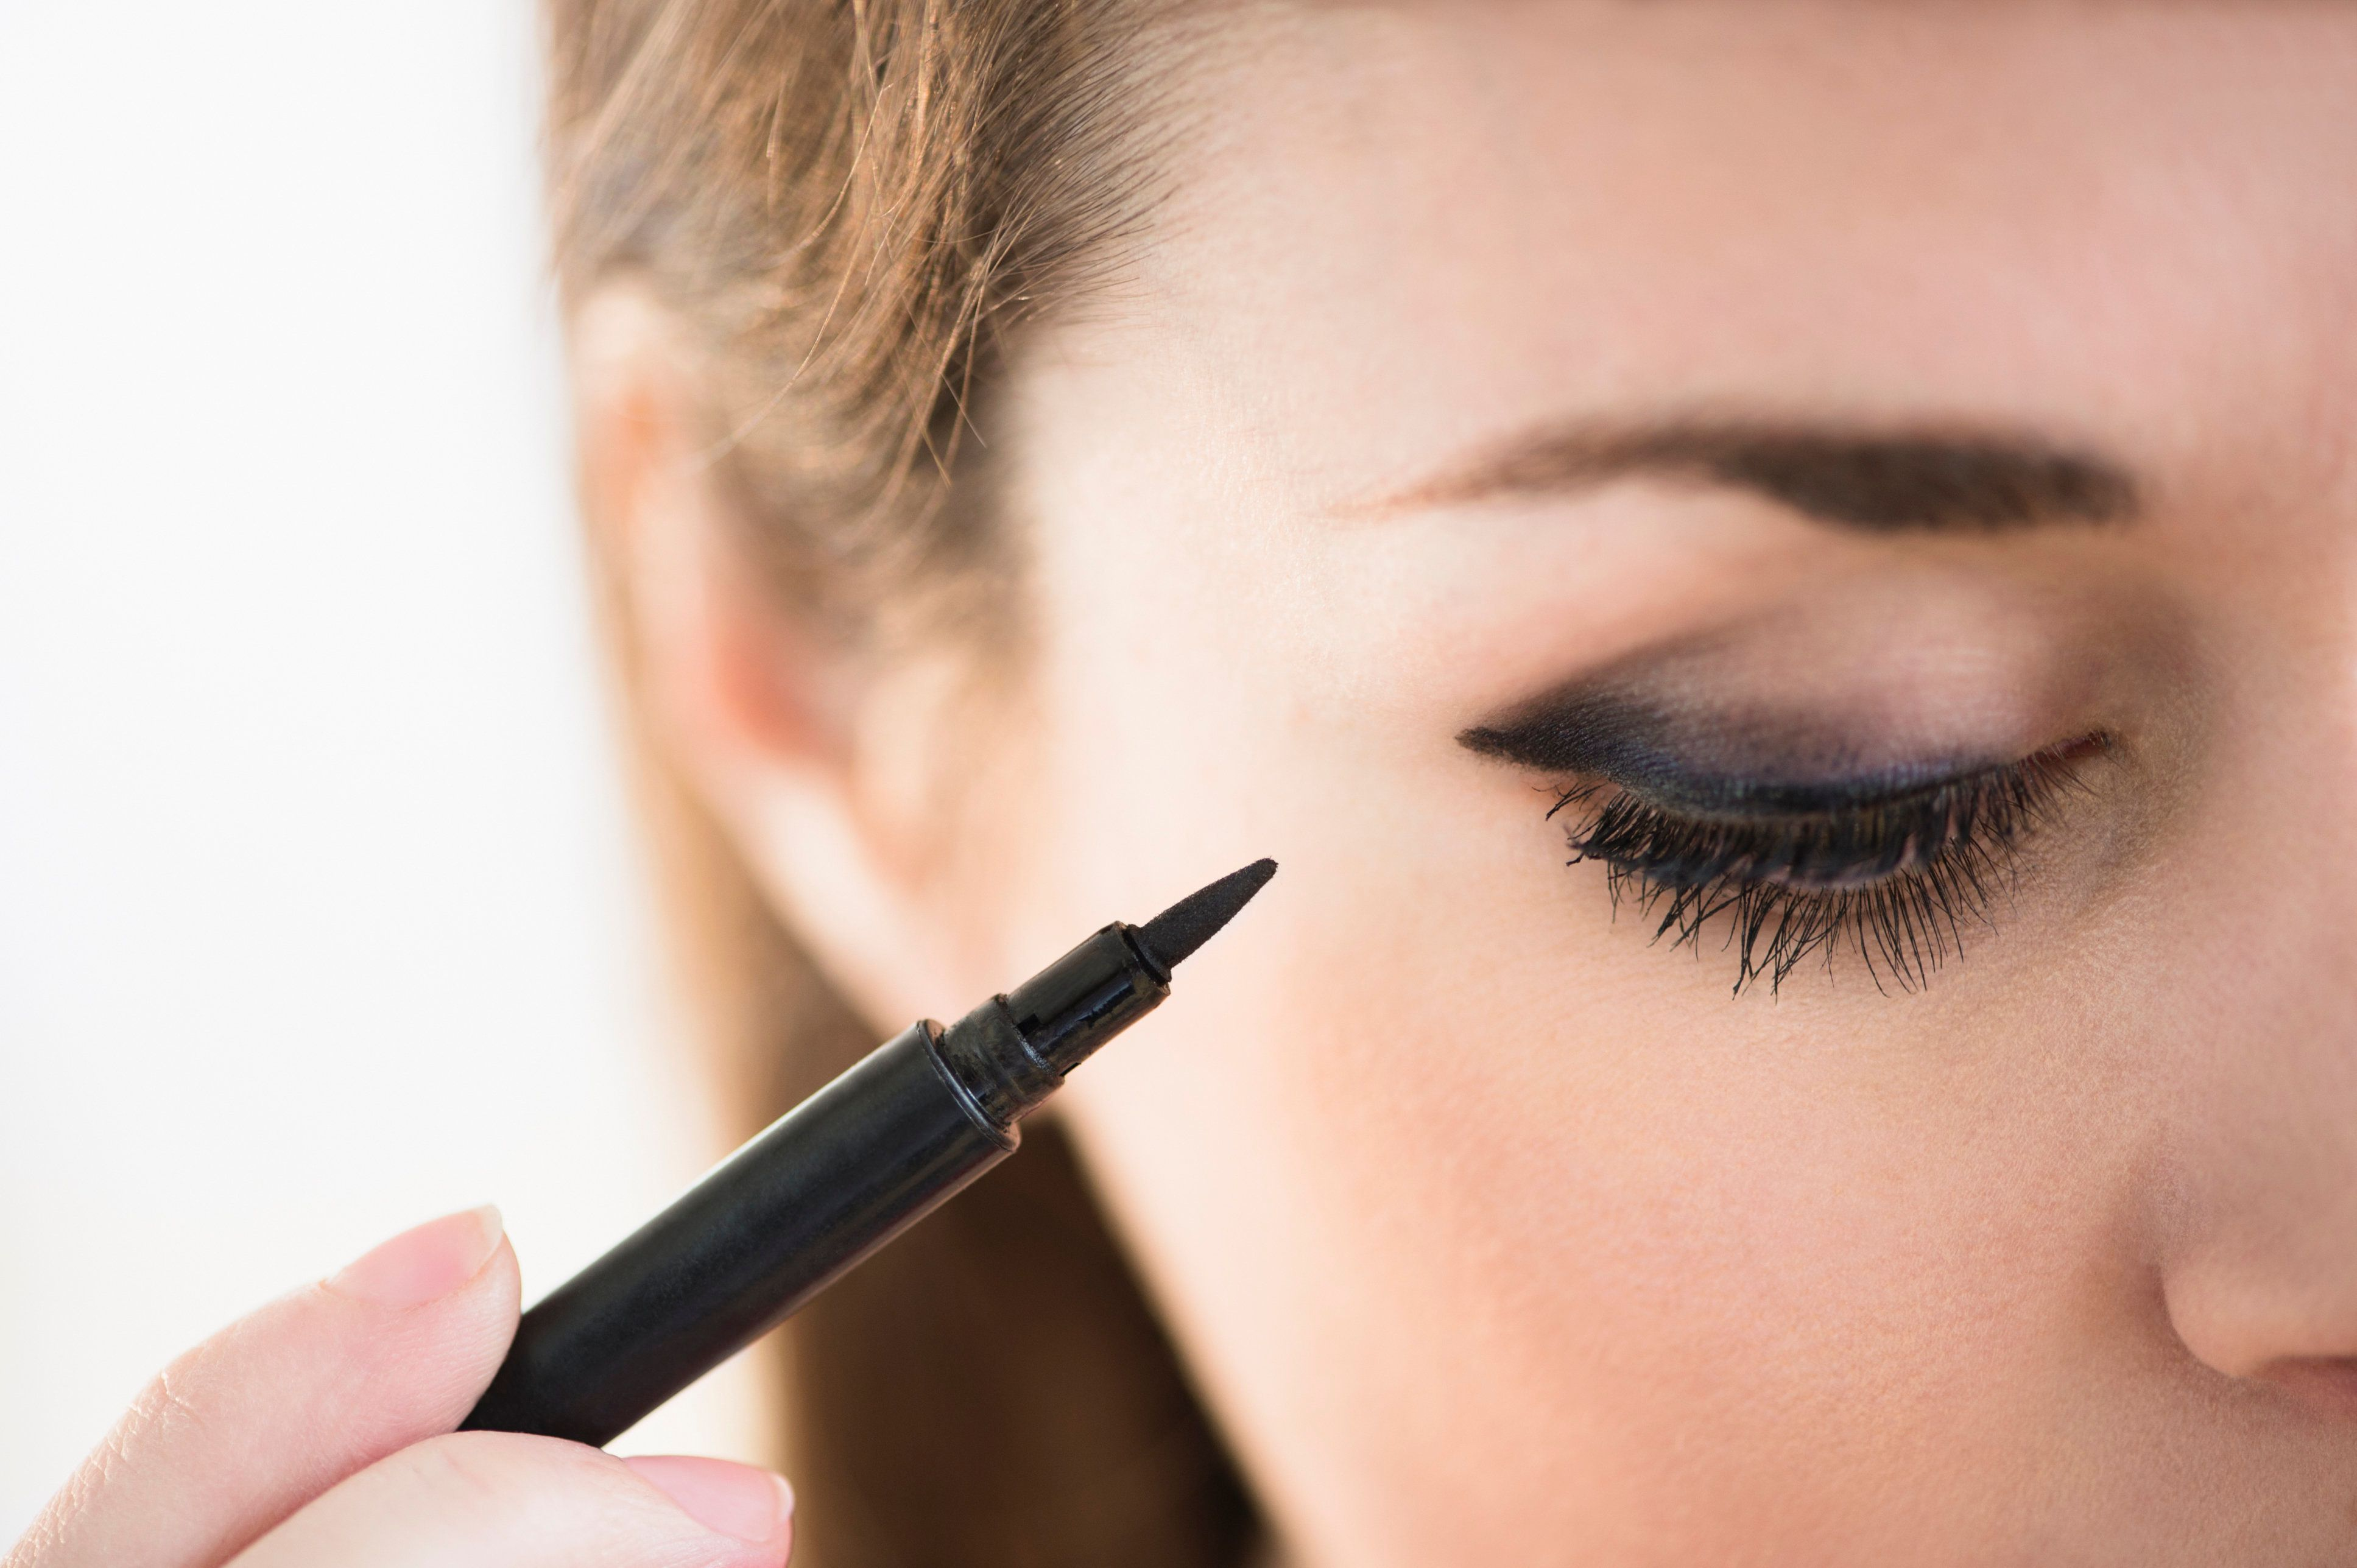 Asda Substitutes Customer's Eyeliner For A Sharpie Pen (Much To Her